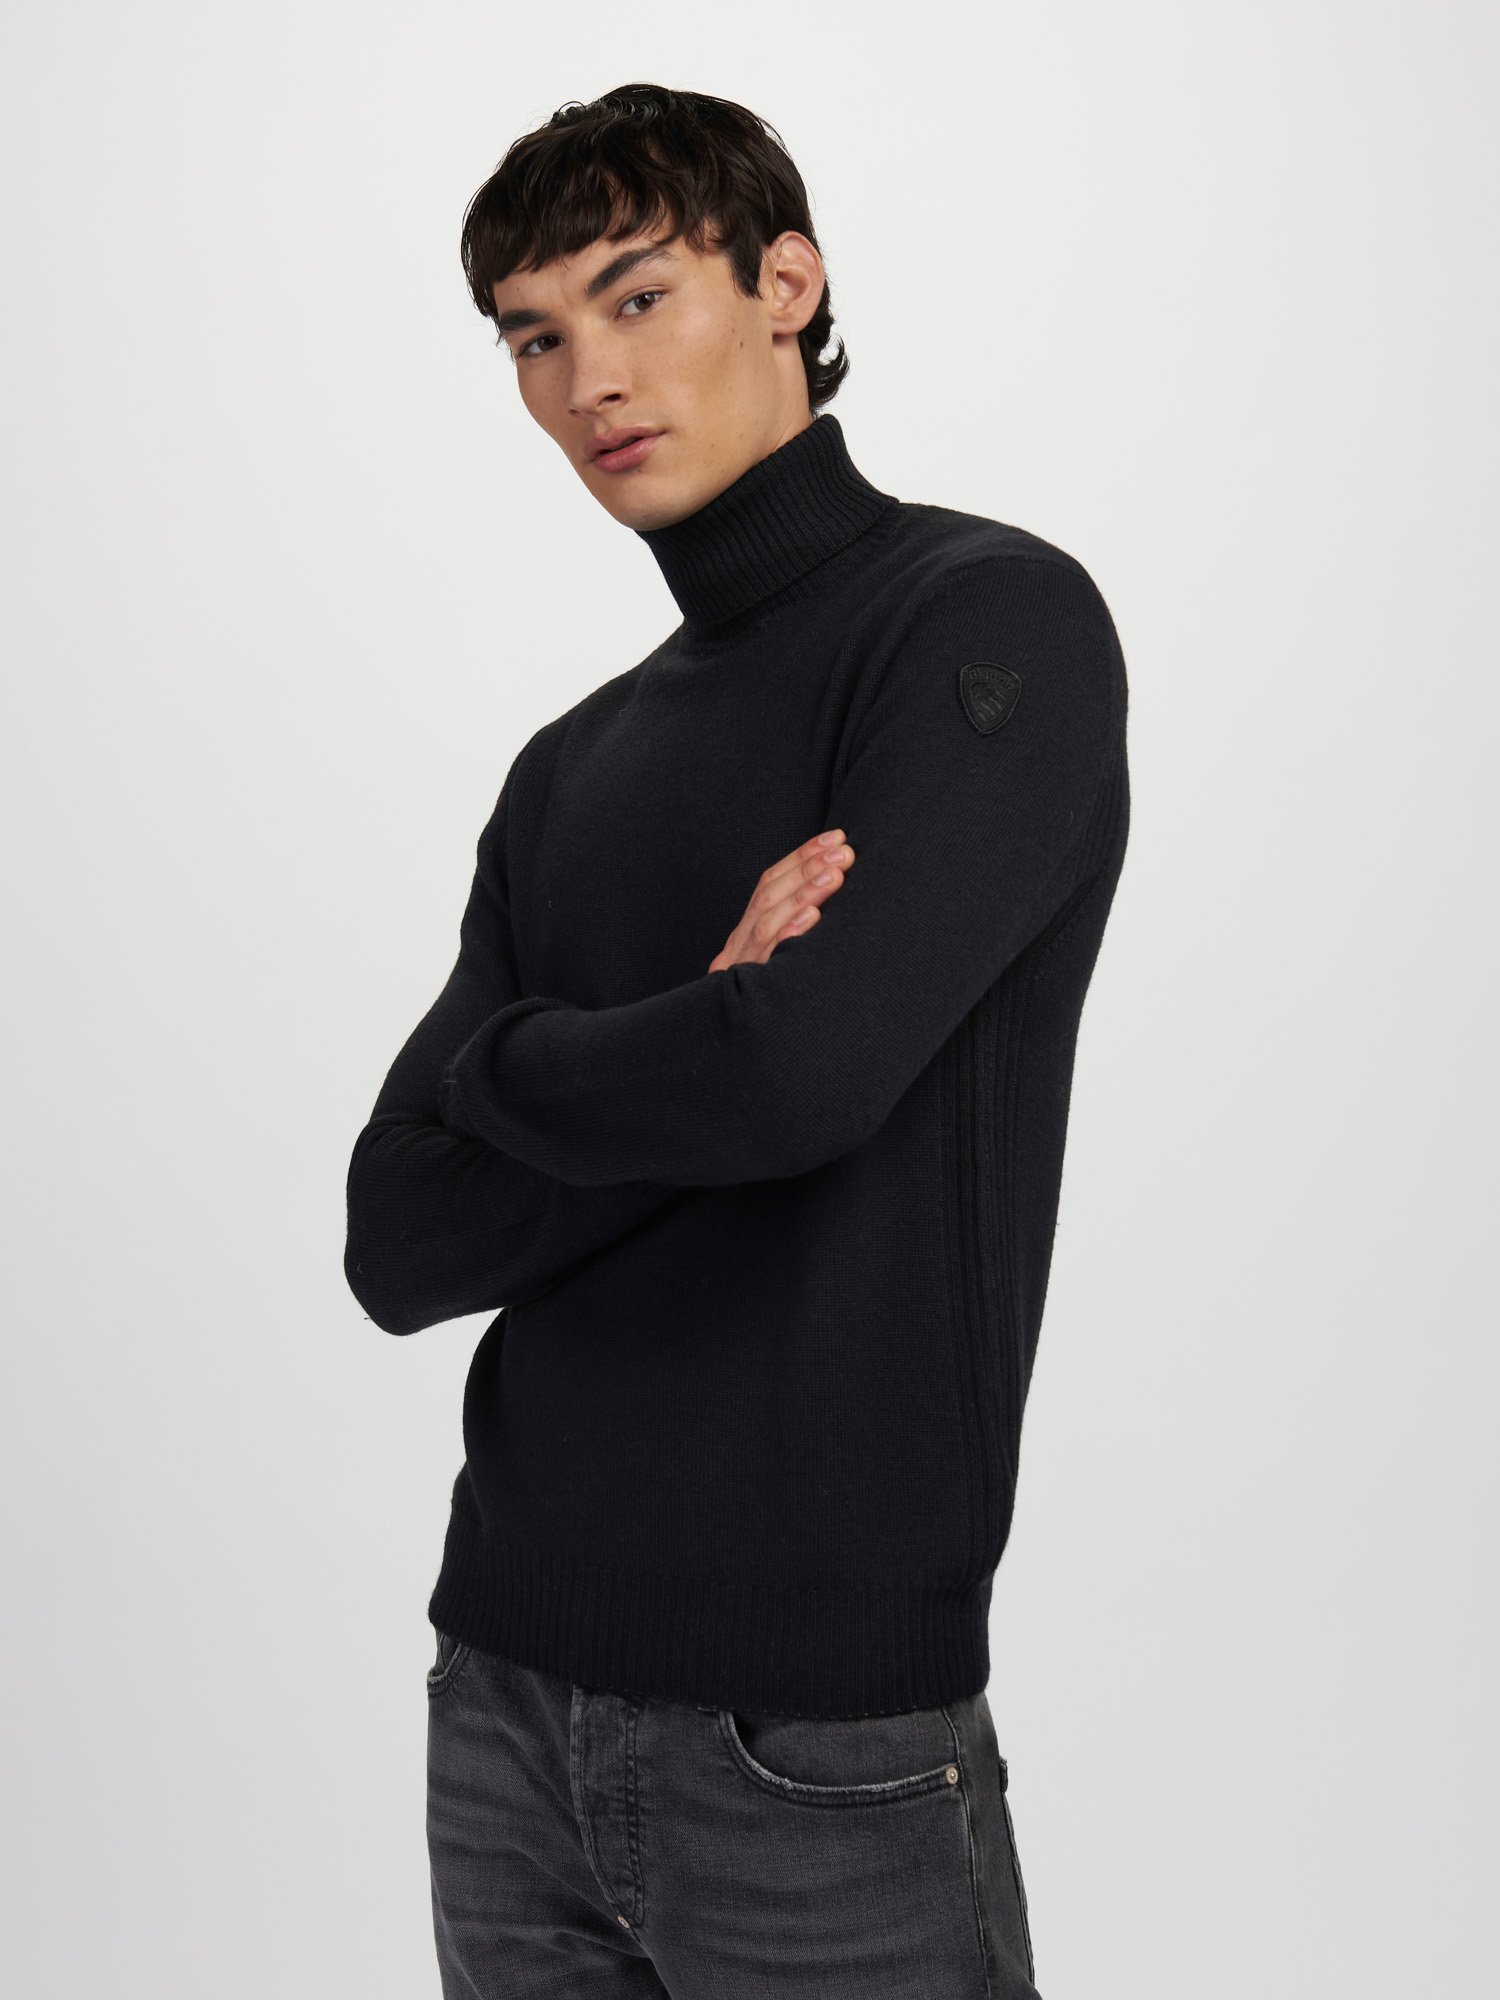 WOOL TURTLENECK WITH STRIPES - Blauer